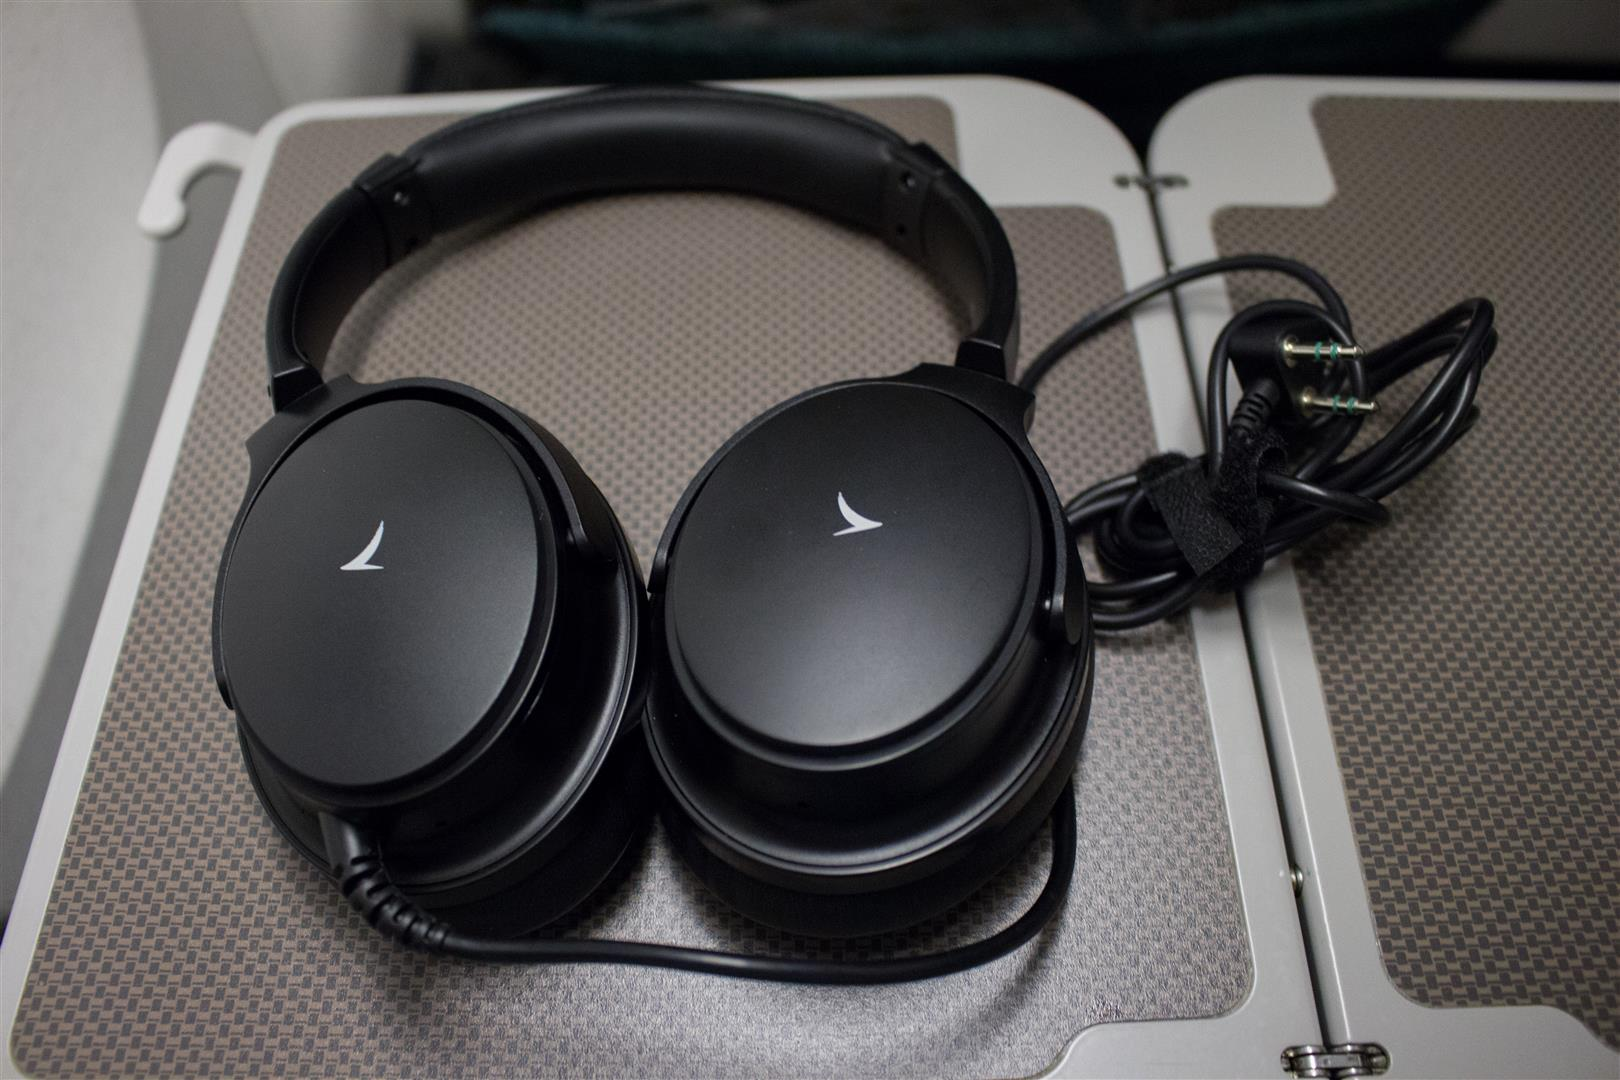 The Cathay Pacific Premium Economy Headphones